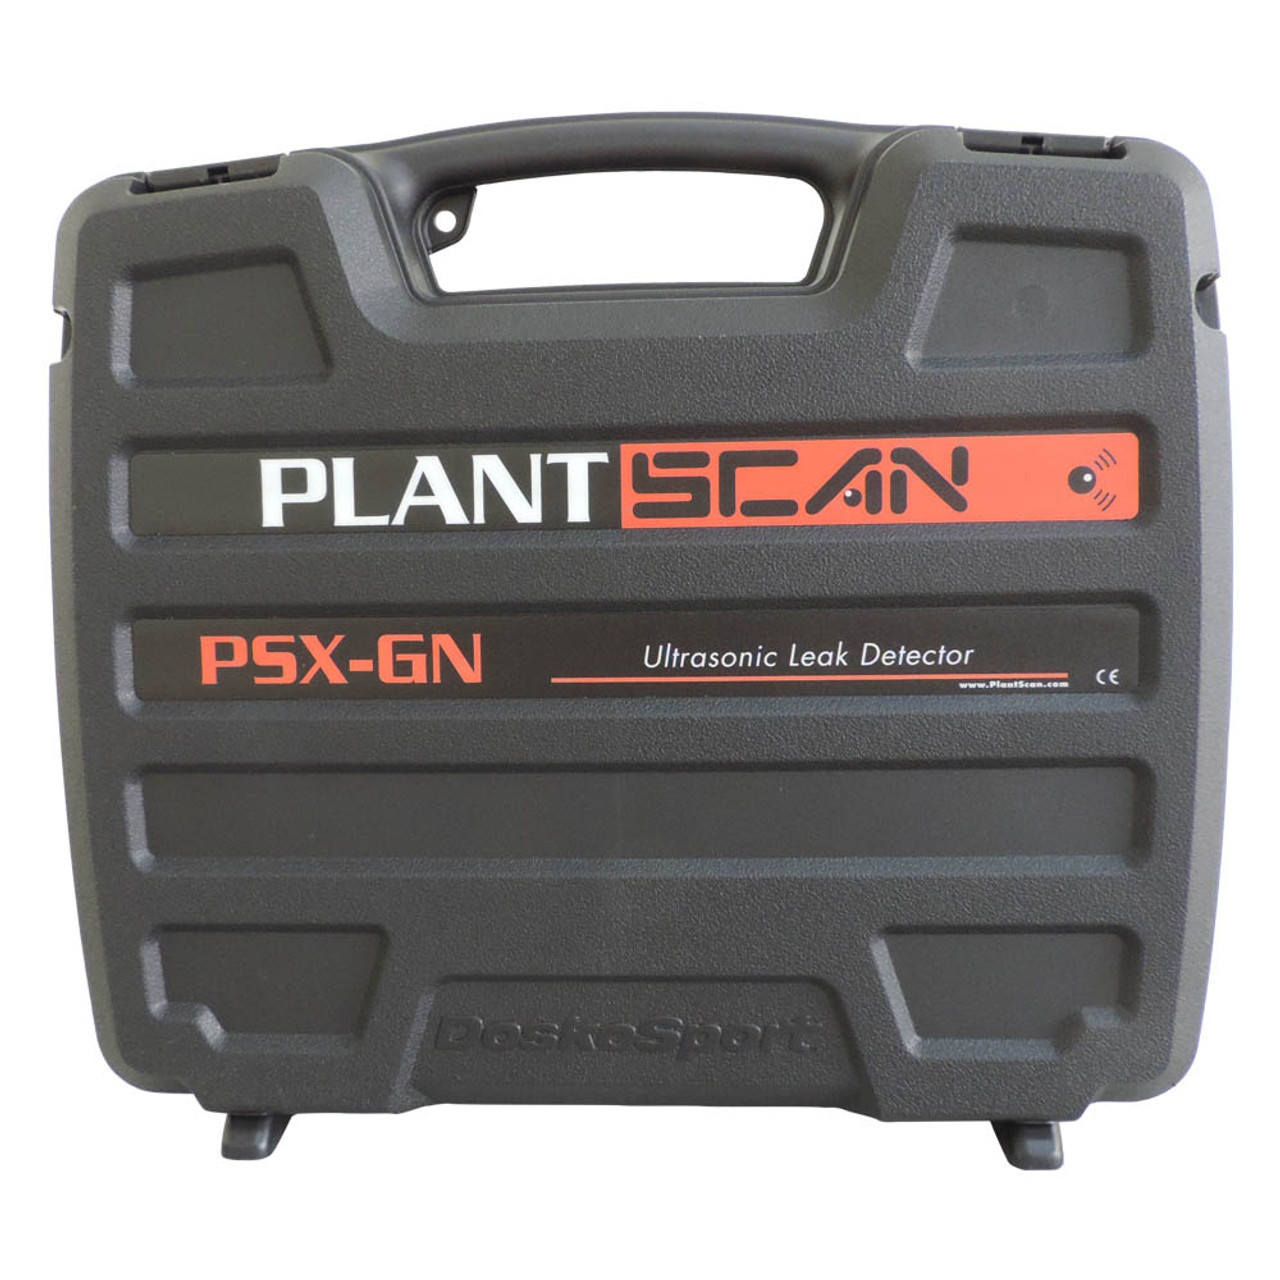 PSX-GN Ultrasonic Leak Detector - Case